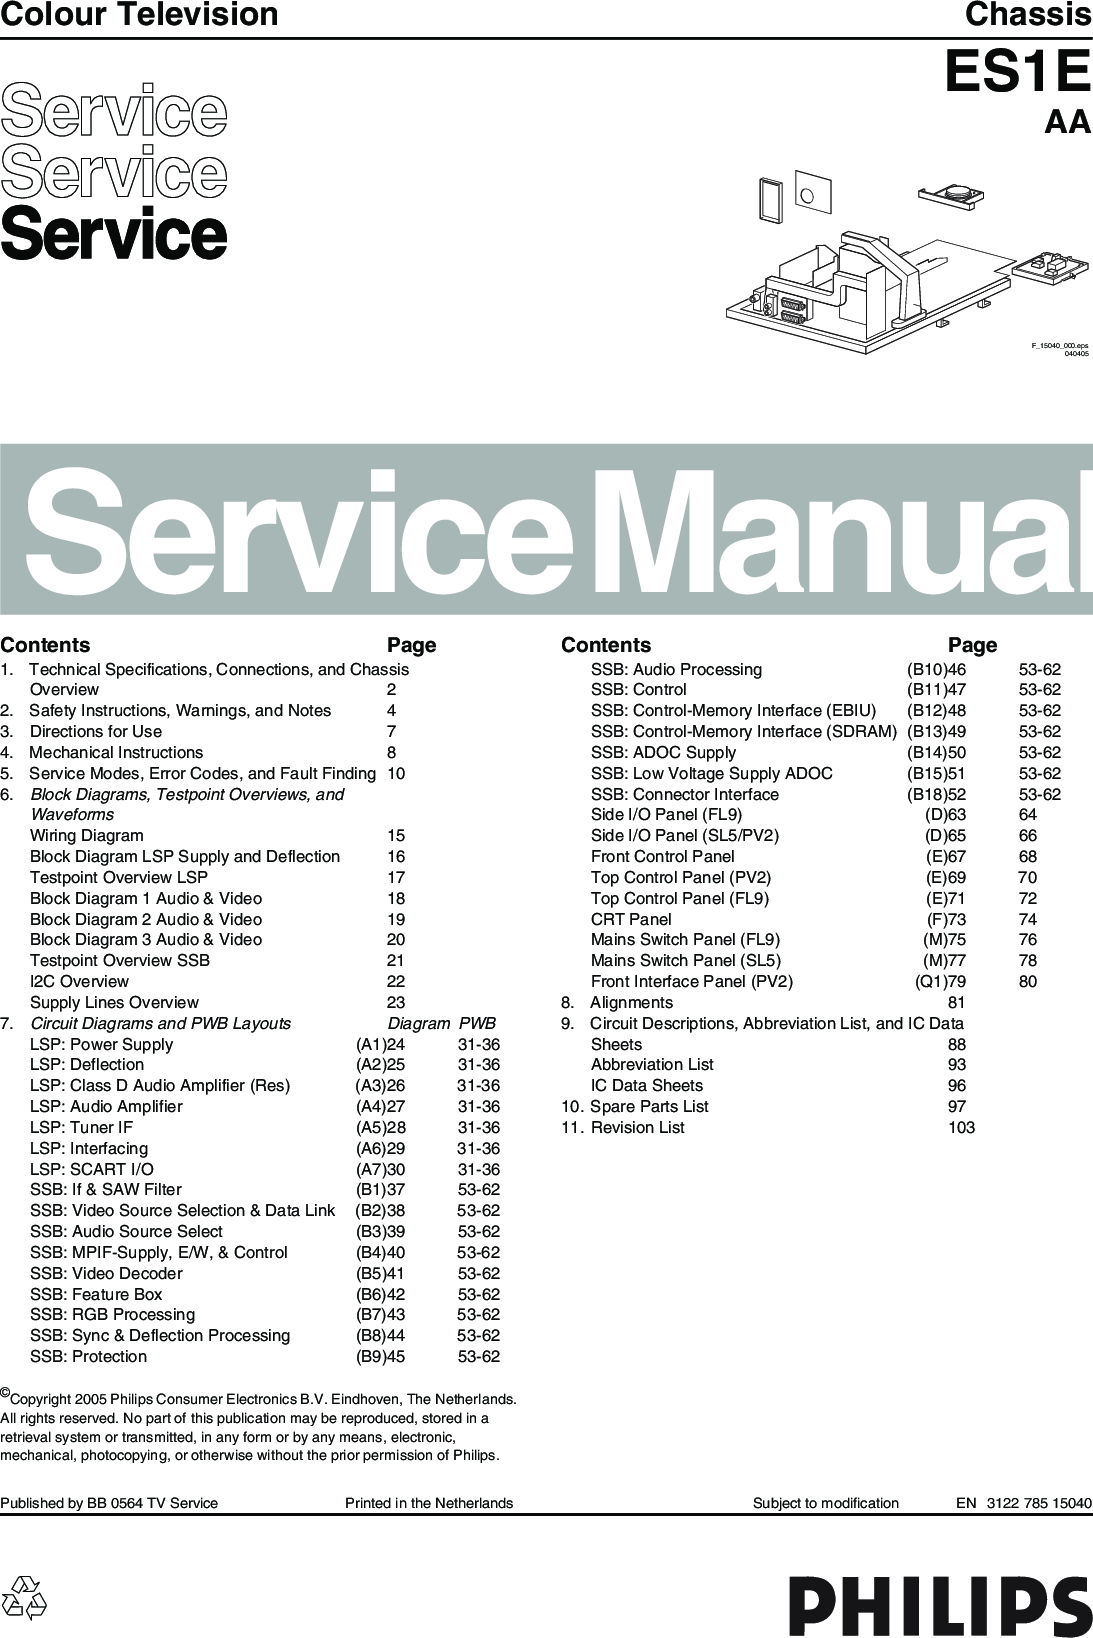 Philips Chassis Es1e Aa Service Manual S Manualscom Tv Ch The G8 Electronics Nb This Section Is Under Development